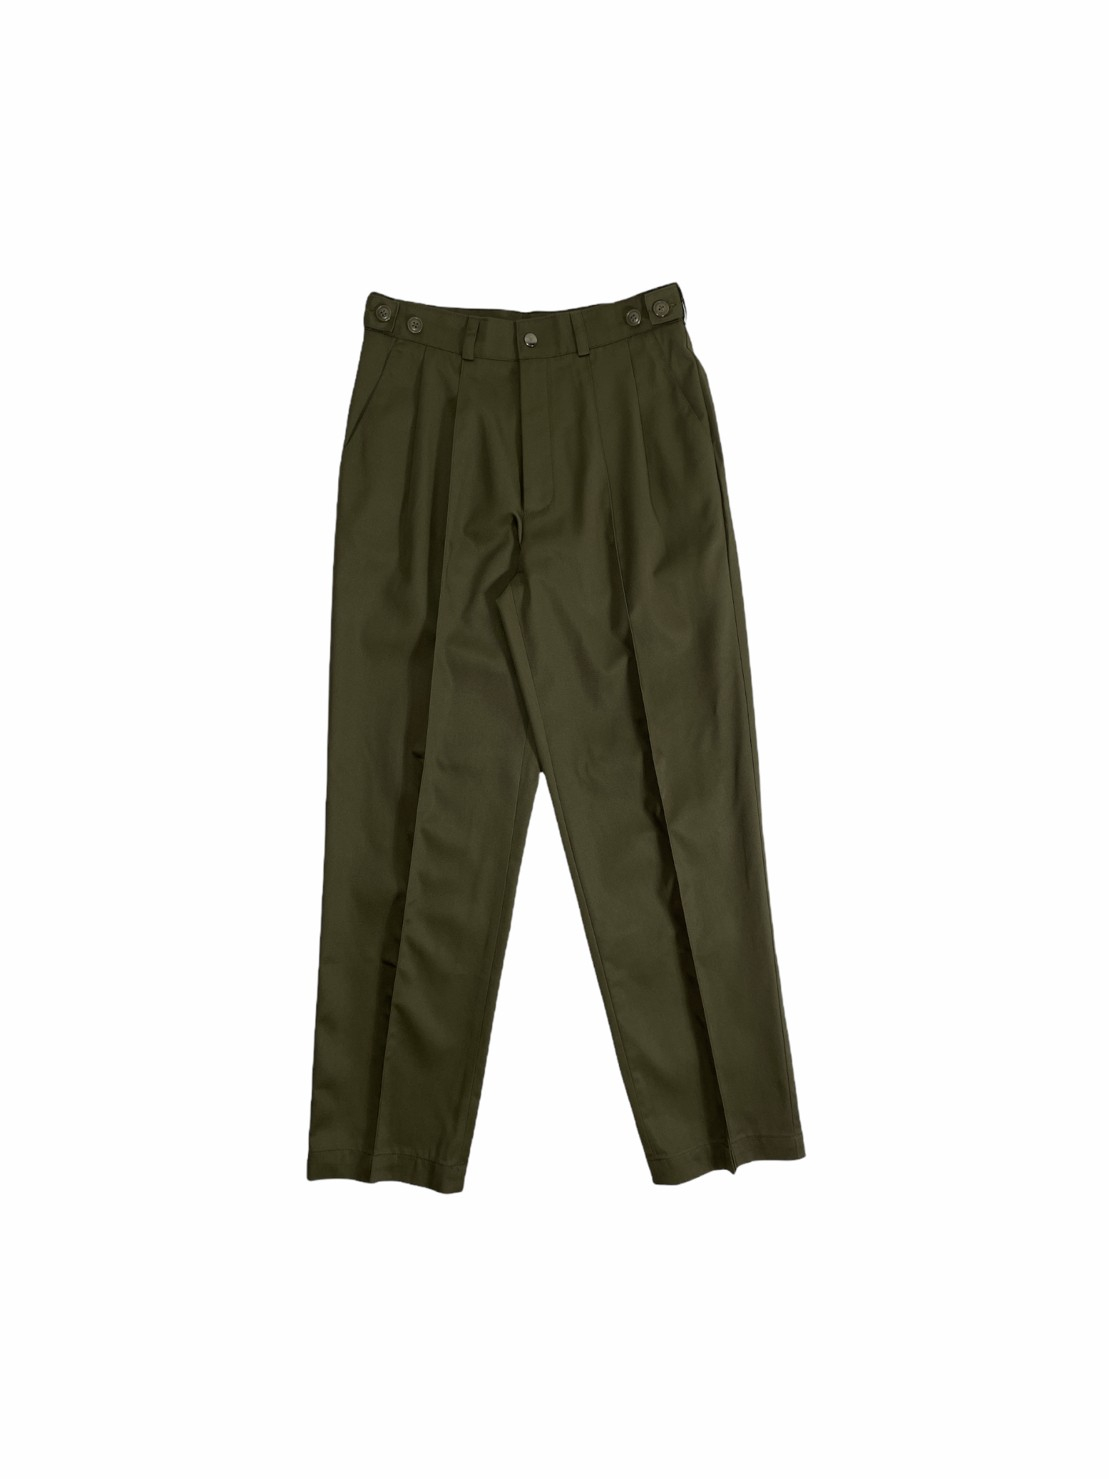 FRANK! Officer Trousers (Russian Green)